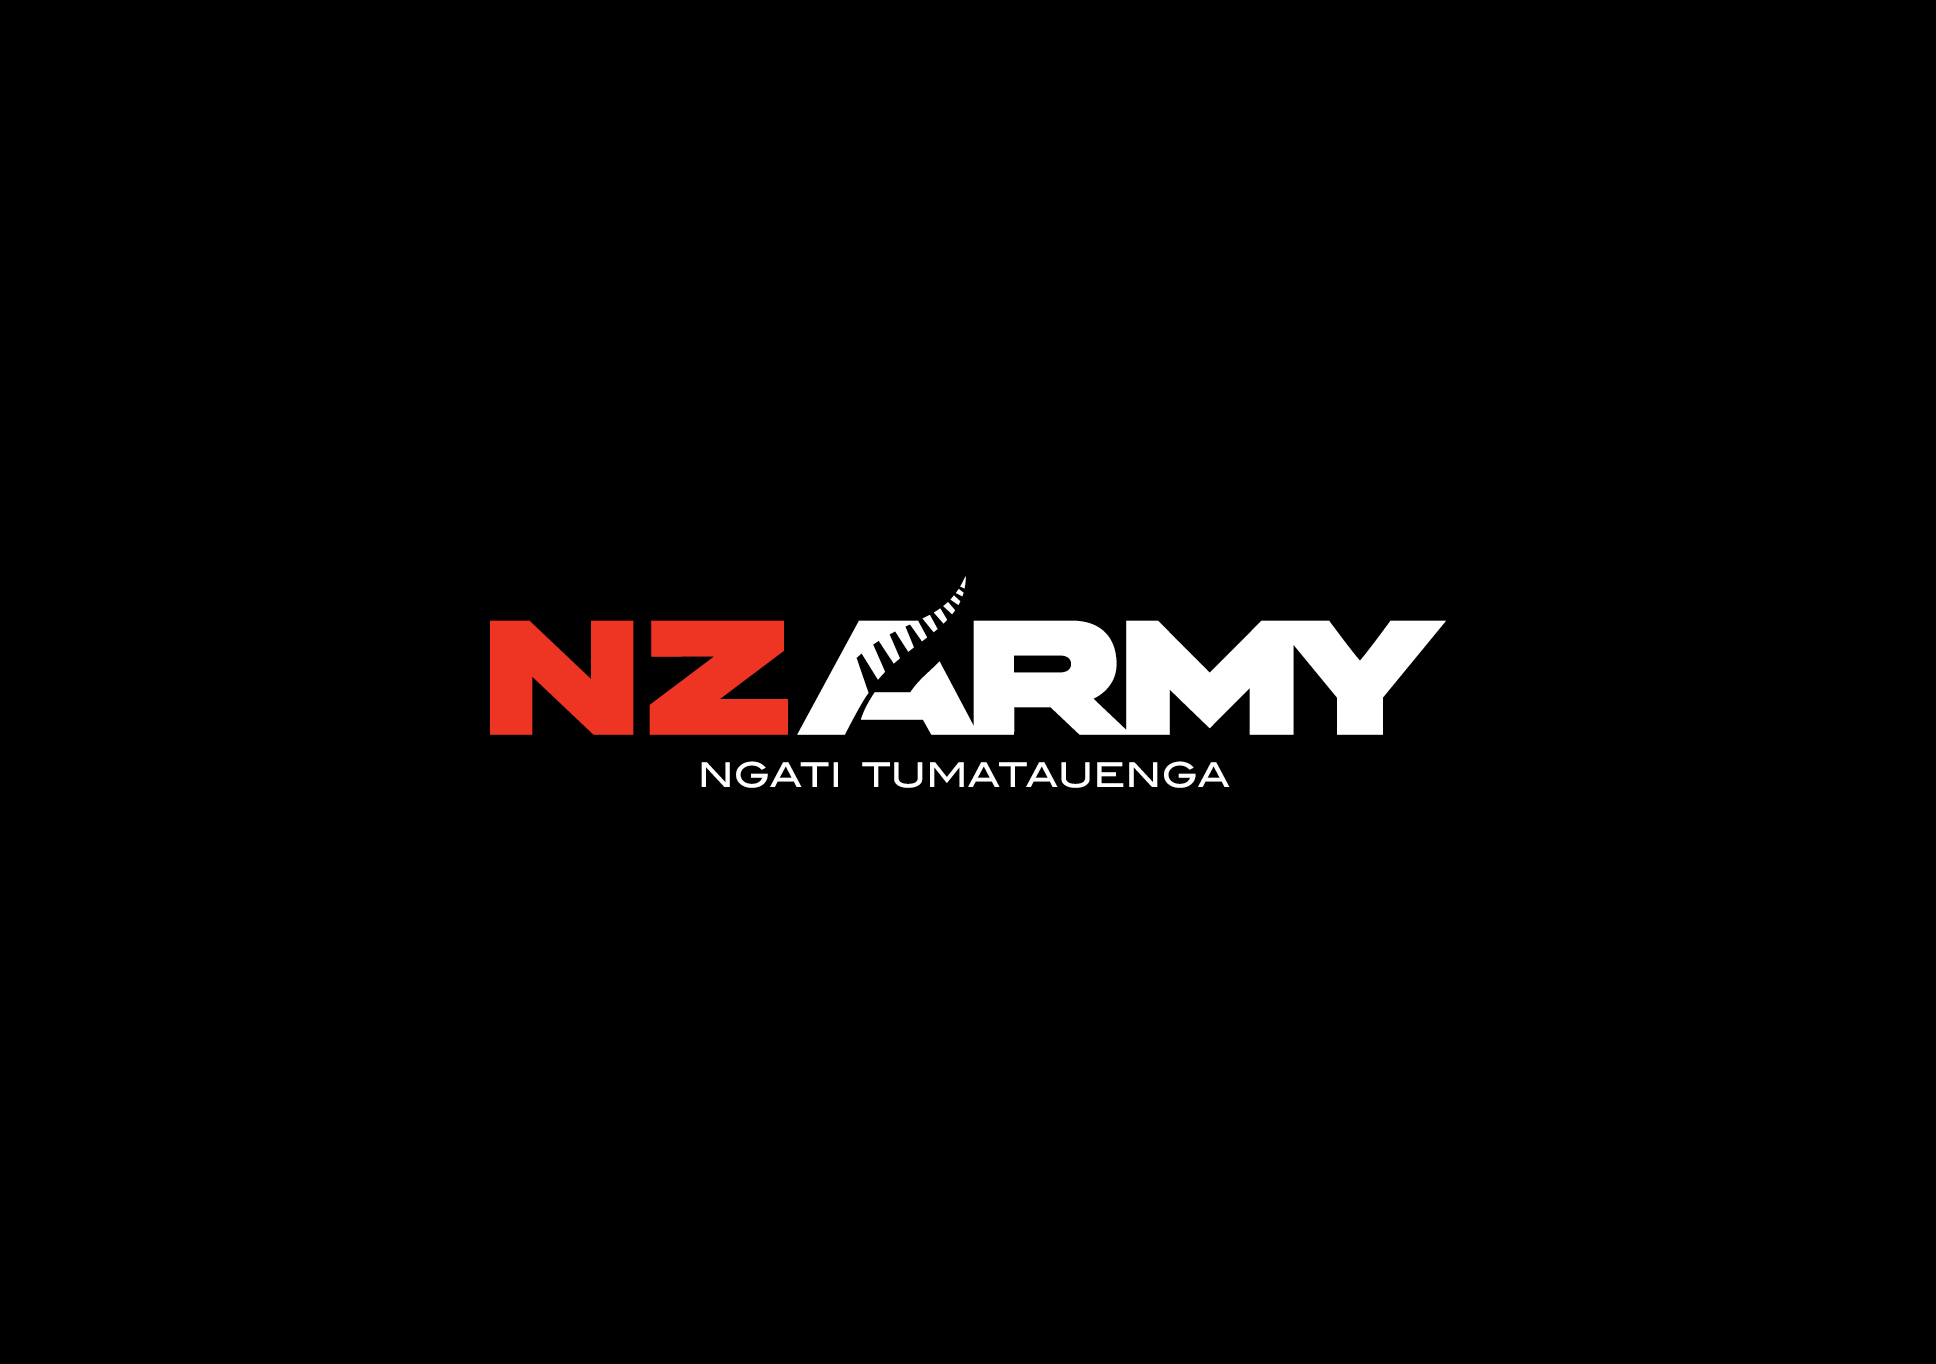 NZ Army logo